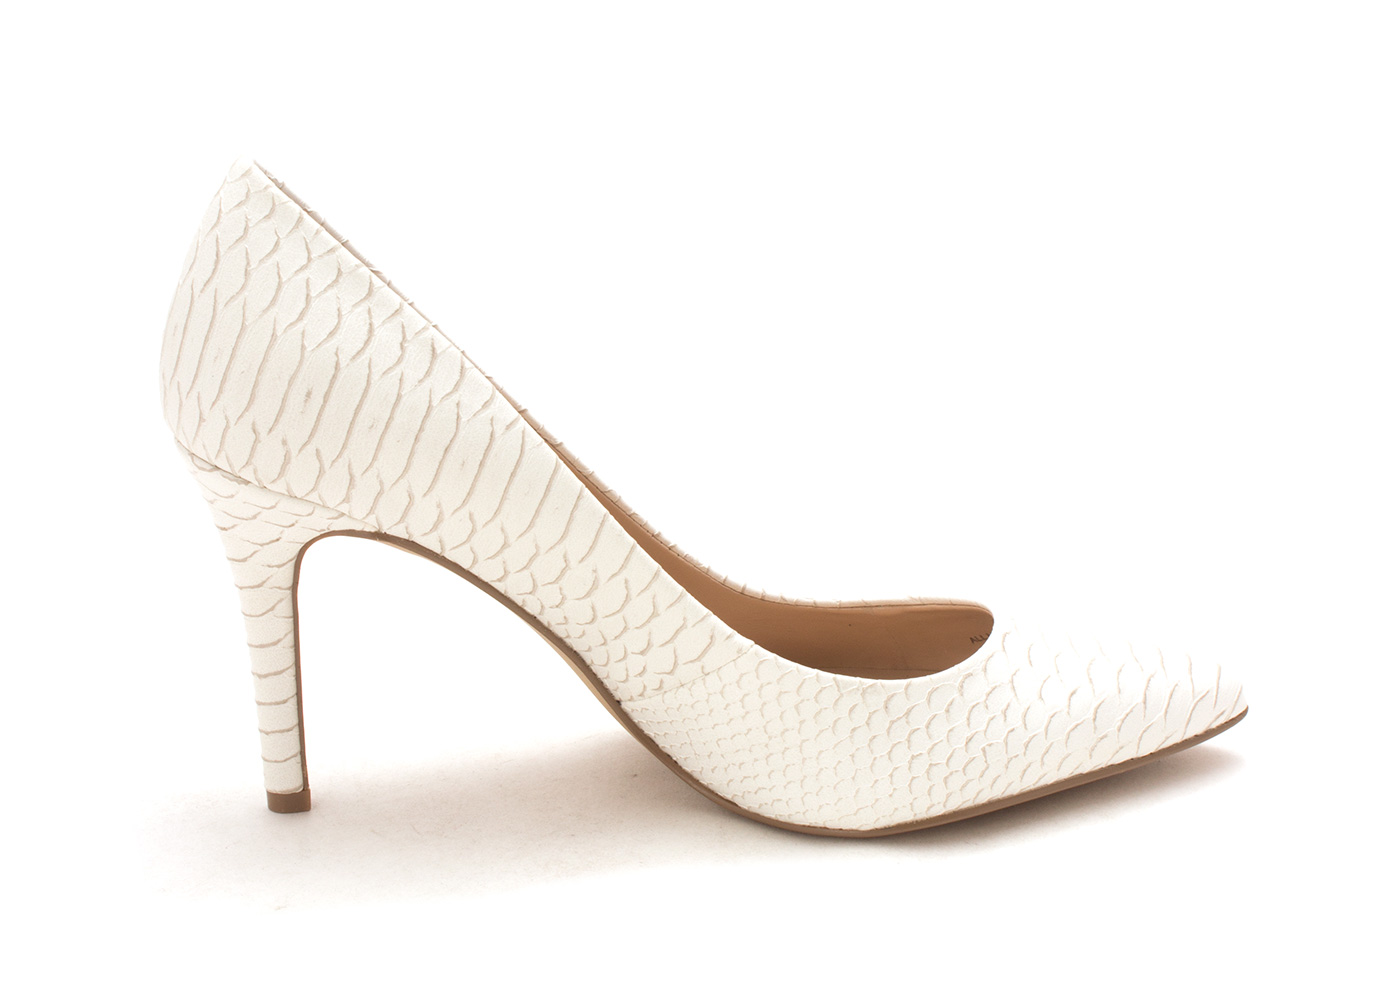 27198d1a4af Jessica Simpson Womens Levin Pointed Toe Classic Pumps